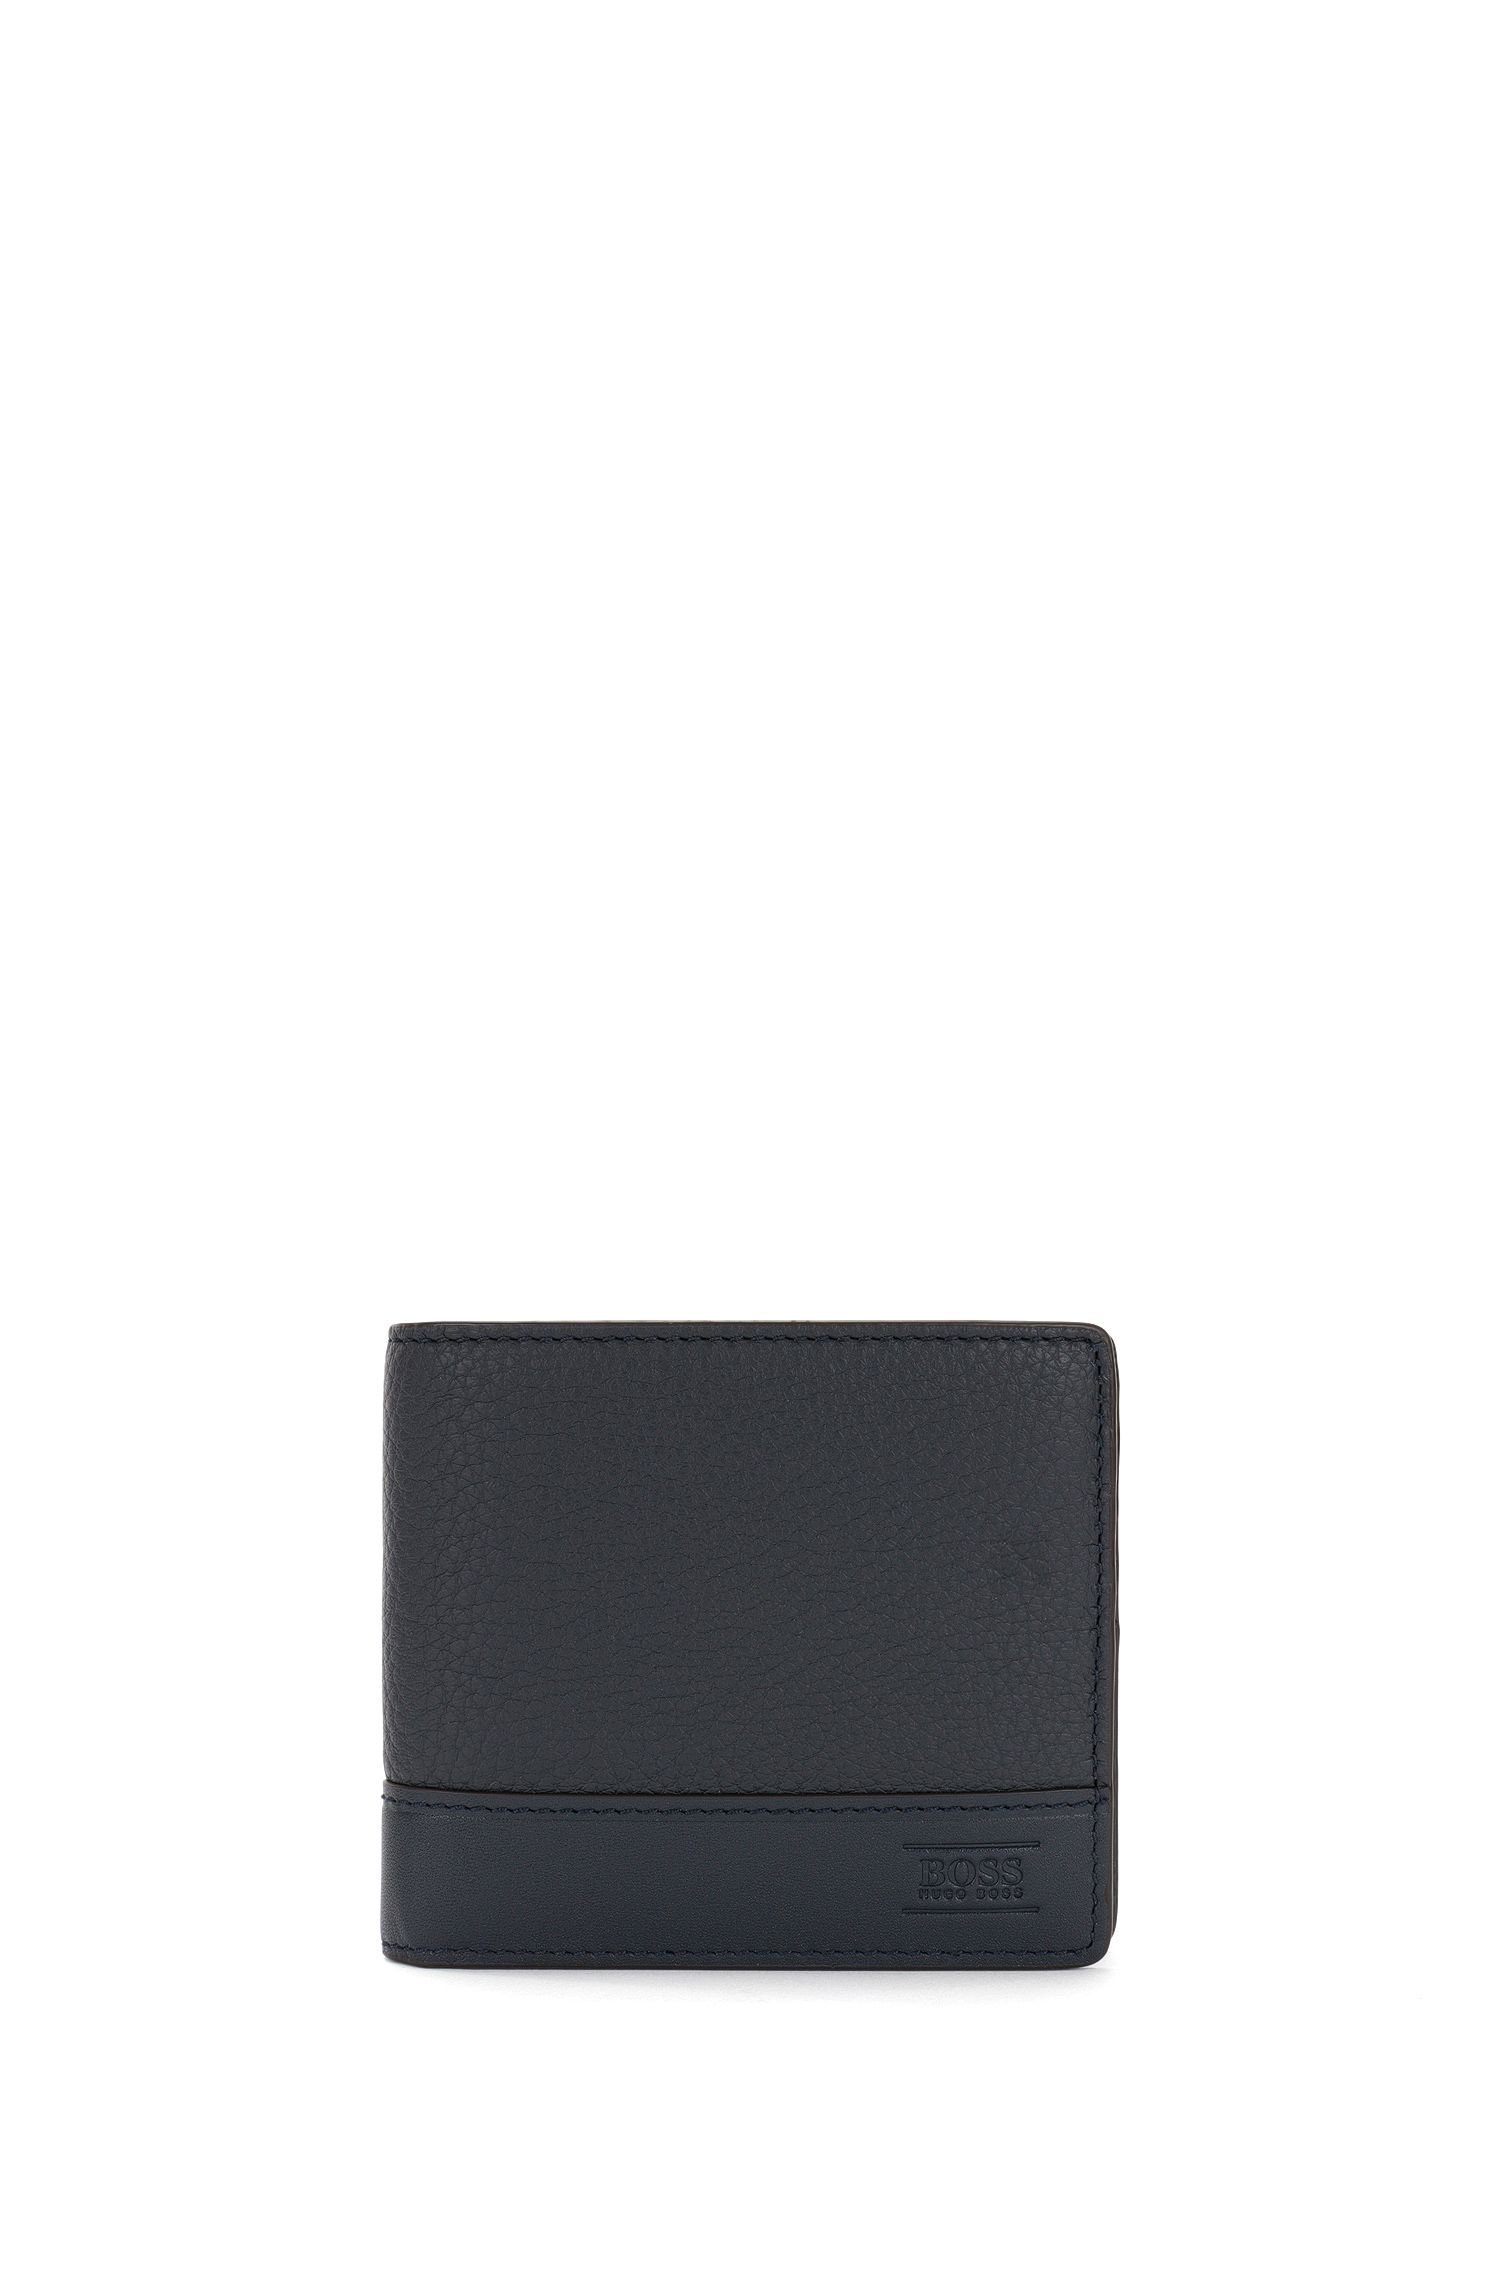 Wallet in textured leather with embossed logo: 'Aspen_8 cc'